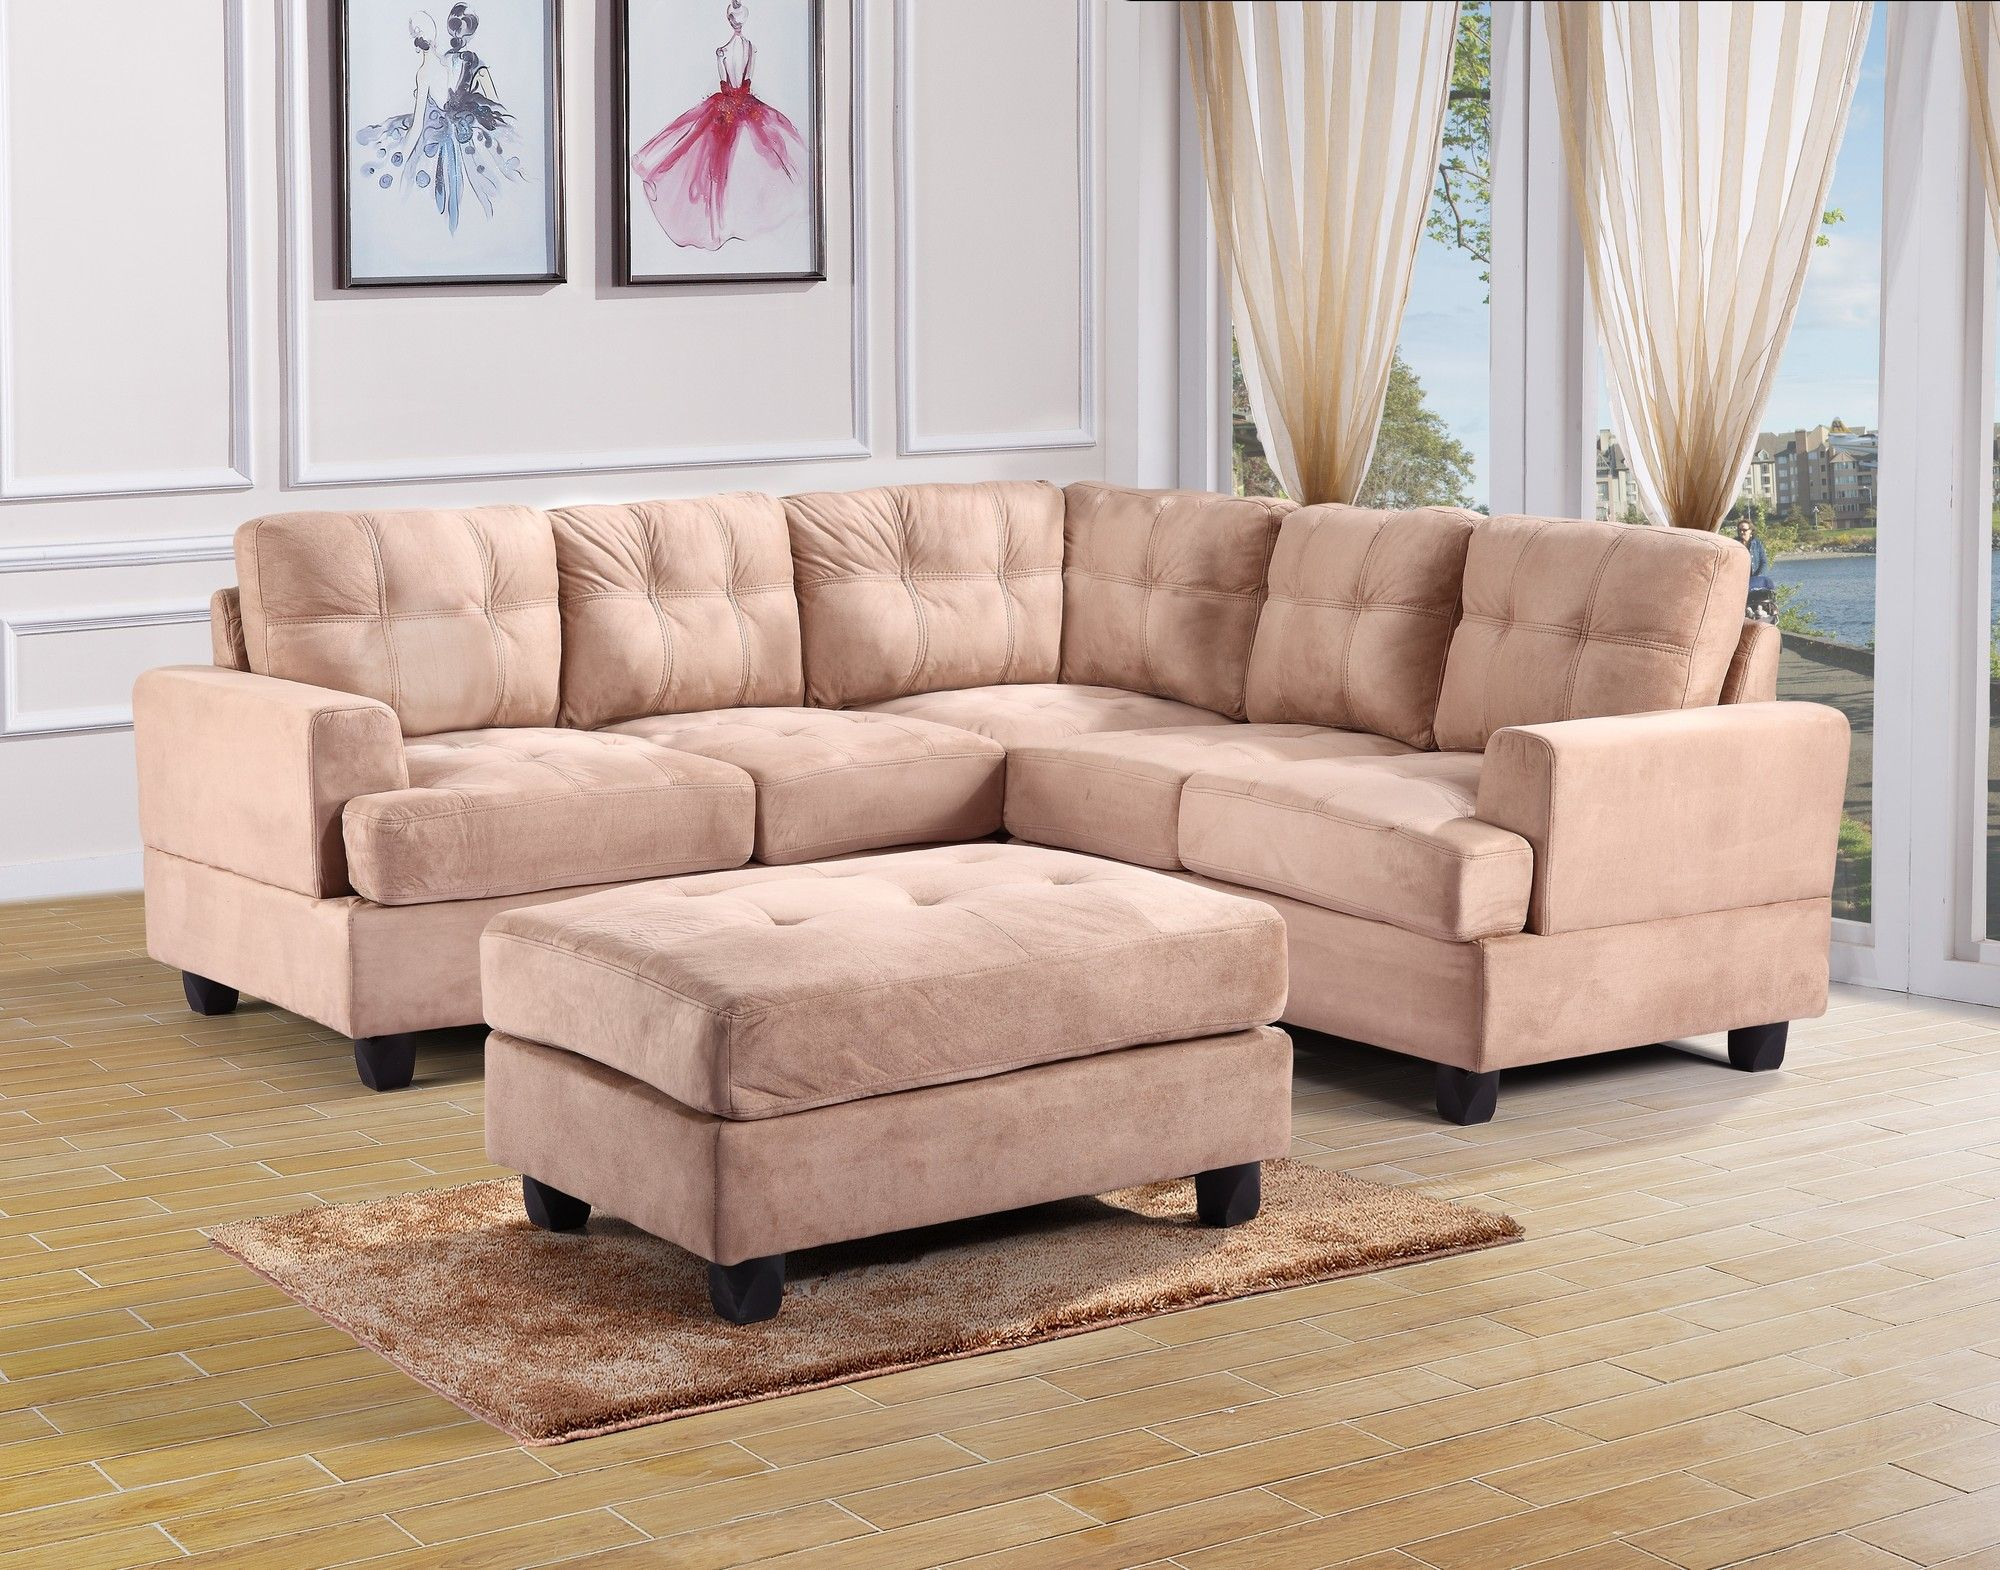 Ordinaire Explore Sectional Sofas, Furniture, And More! Sectional | Joss U0026 Main